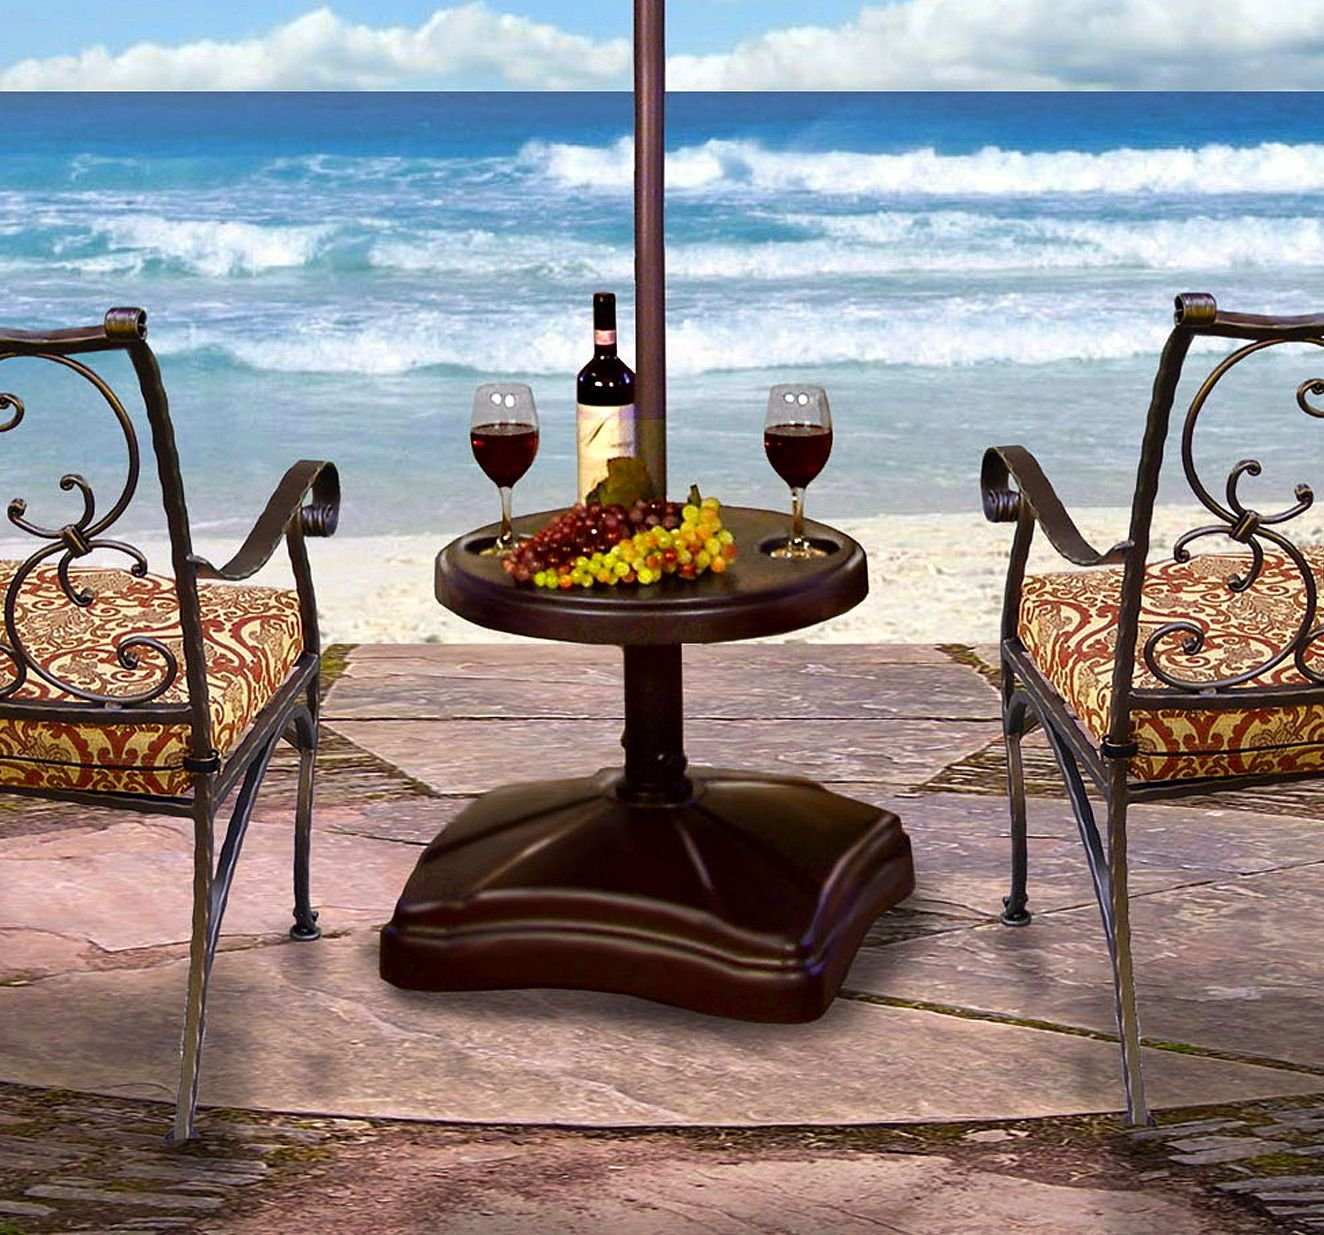 Patio Umbrella Stand Table: Table Rolling Umbrella Stand Accessory Hold Drink Snack